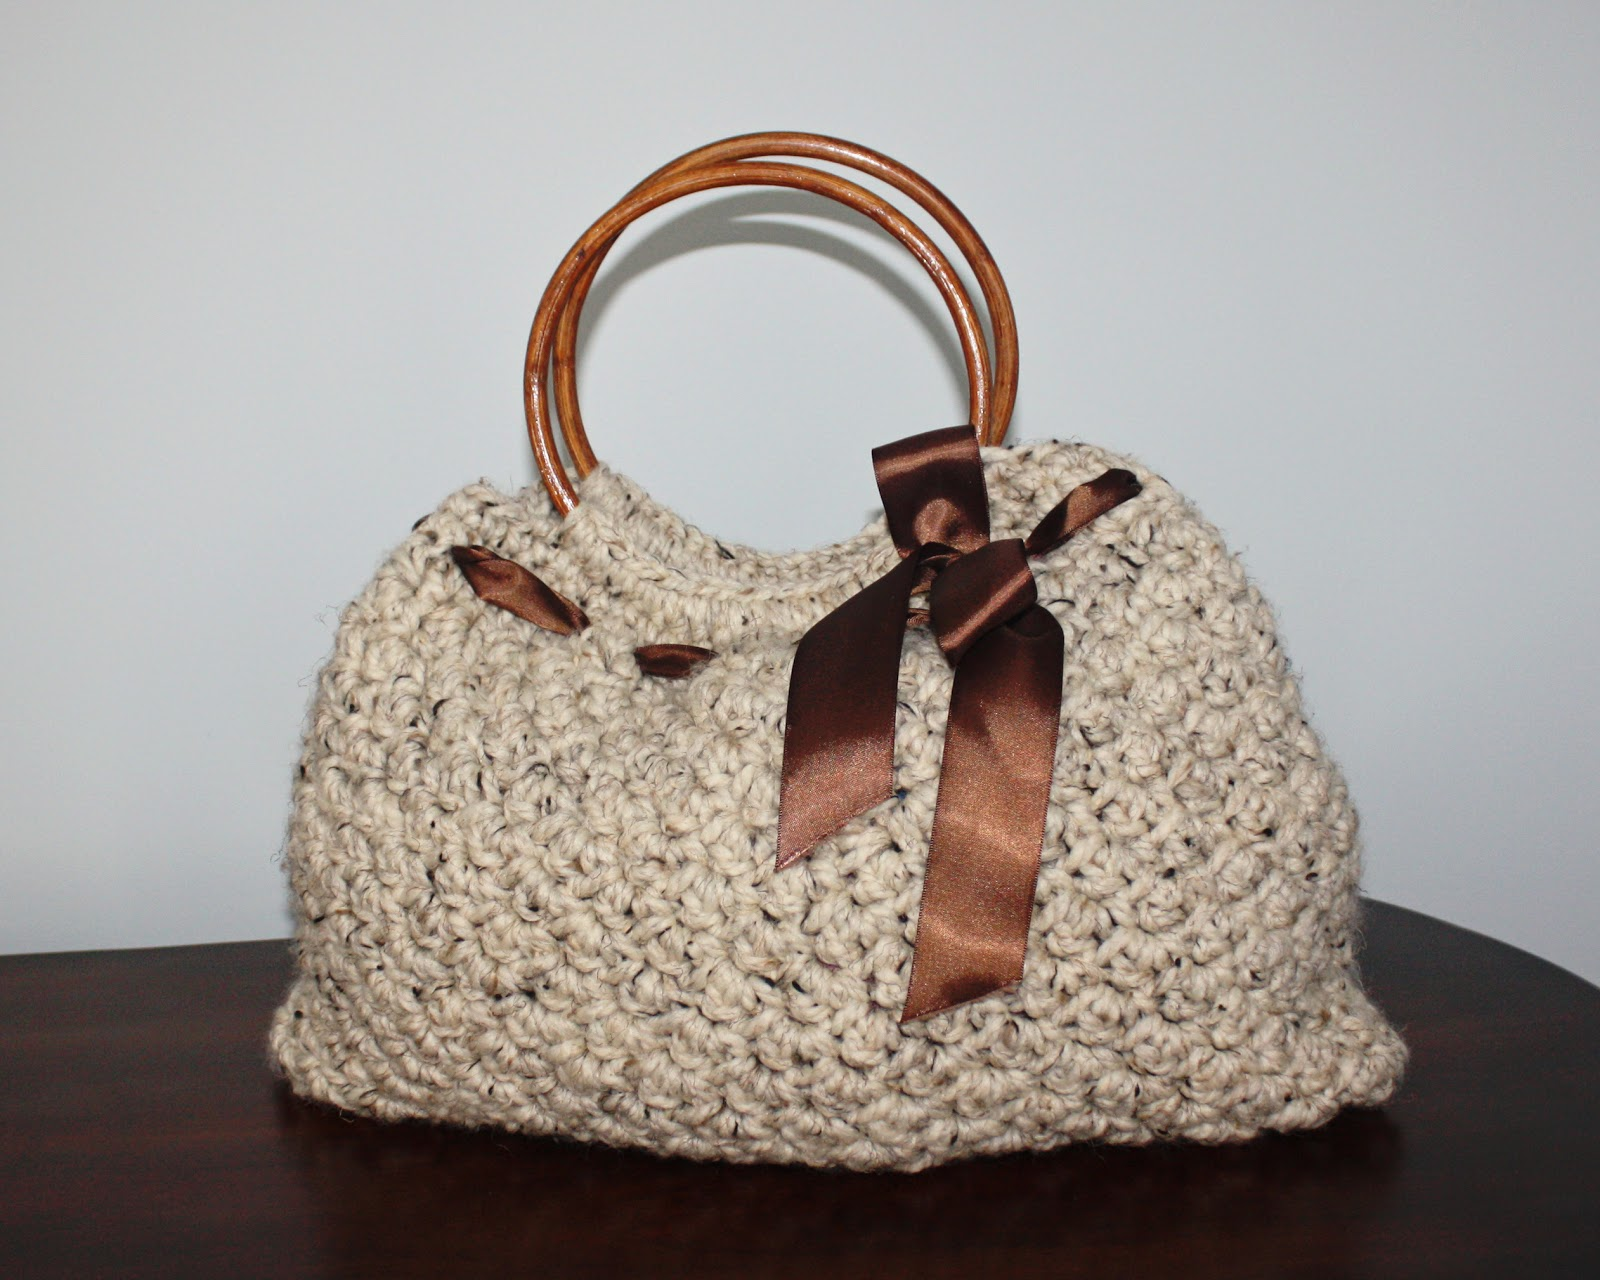 Crochet Purses And Bags : Pretty Darn Adorable Crochet: Free Patterns